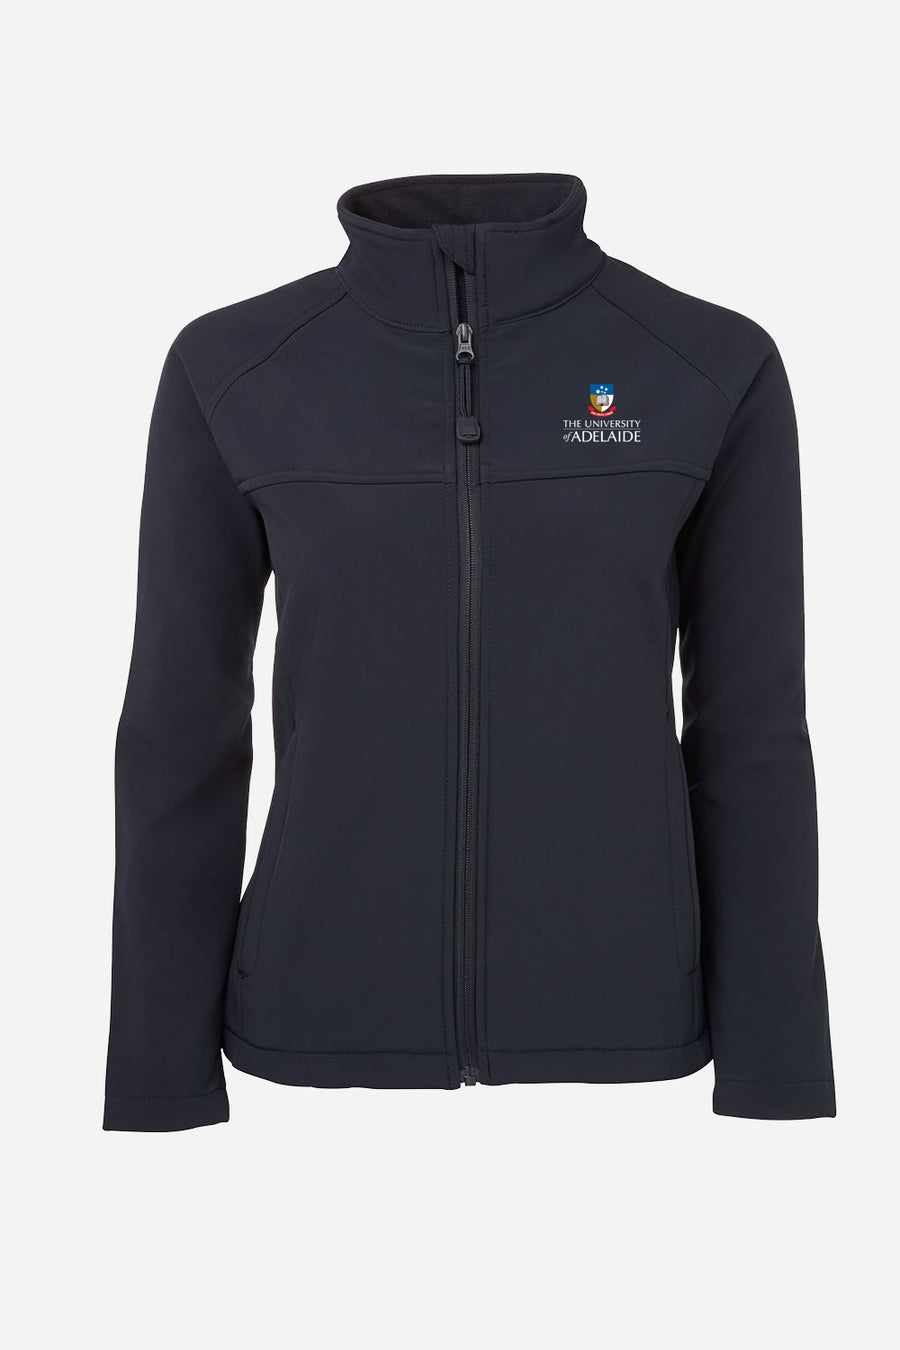 Soft Shell Jacket Women's - The Adelaide Store